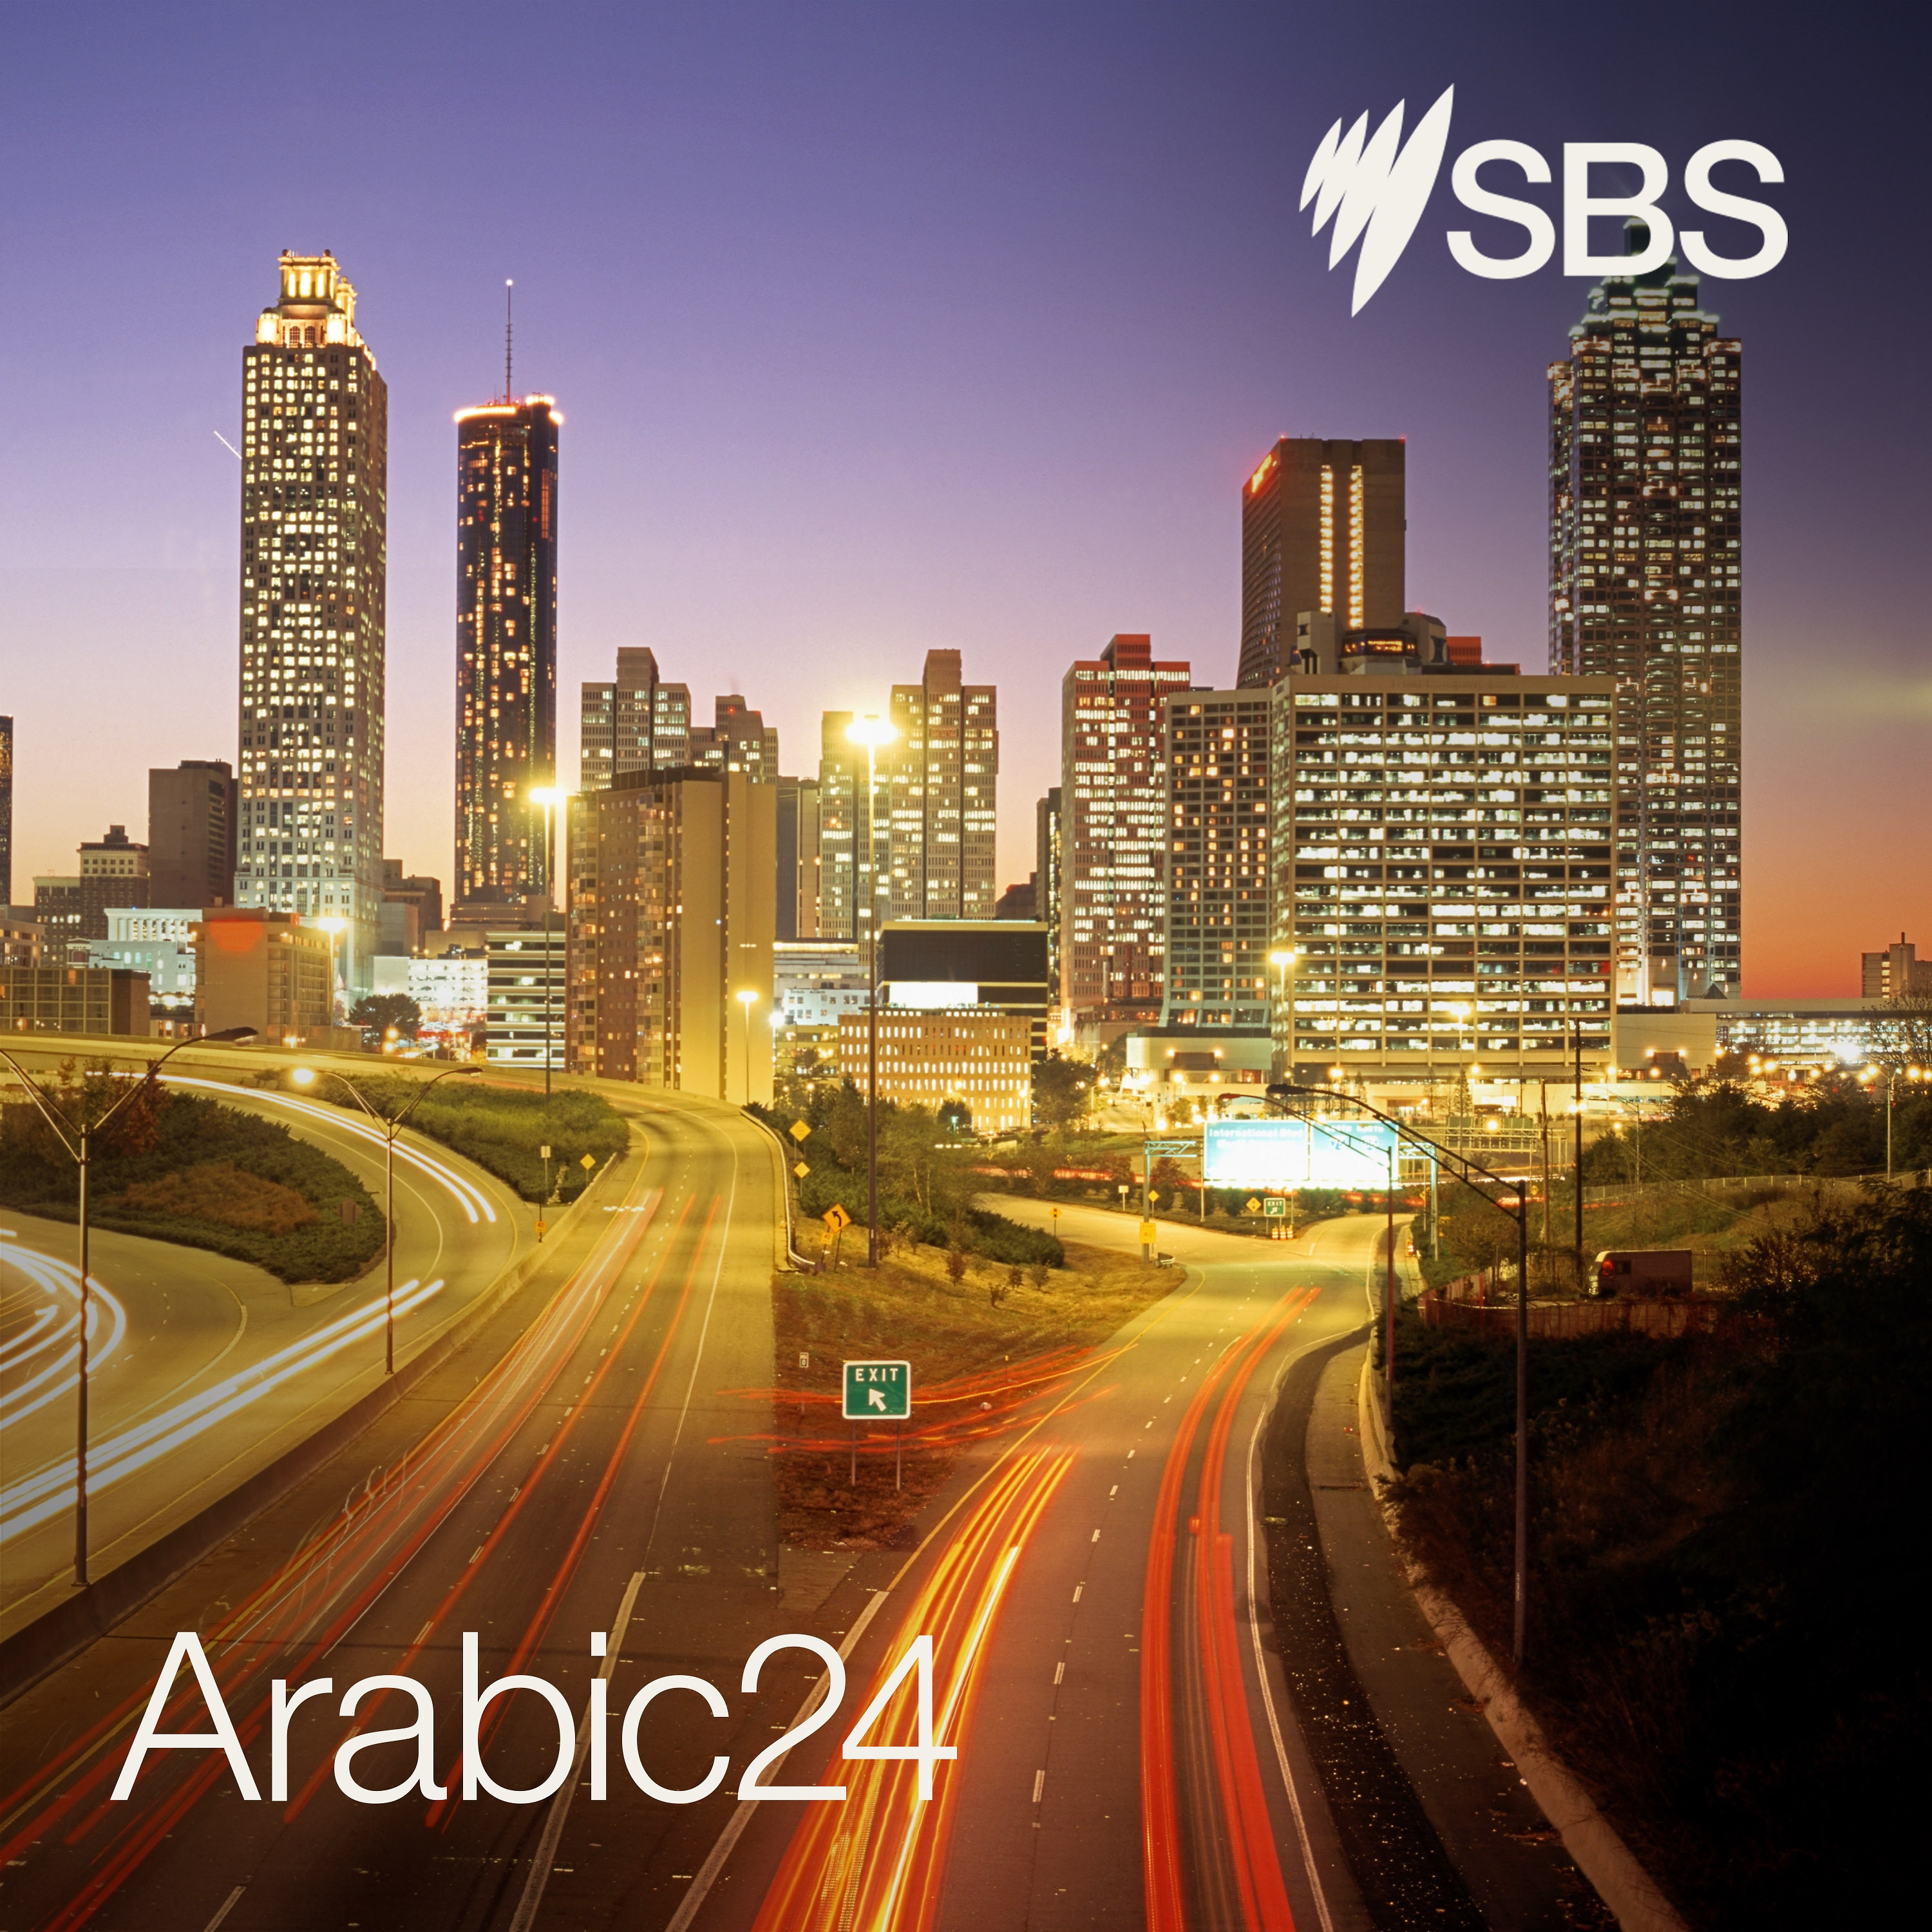 Check SBS Arabic24 to access free media